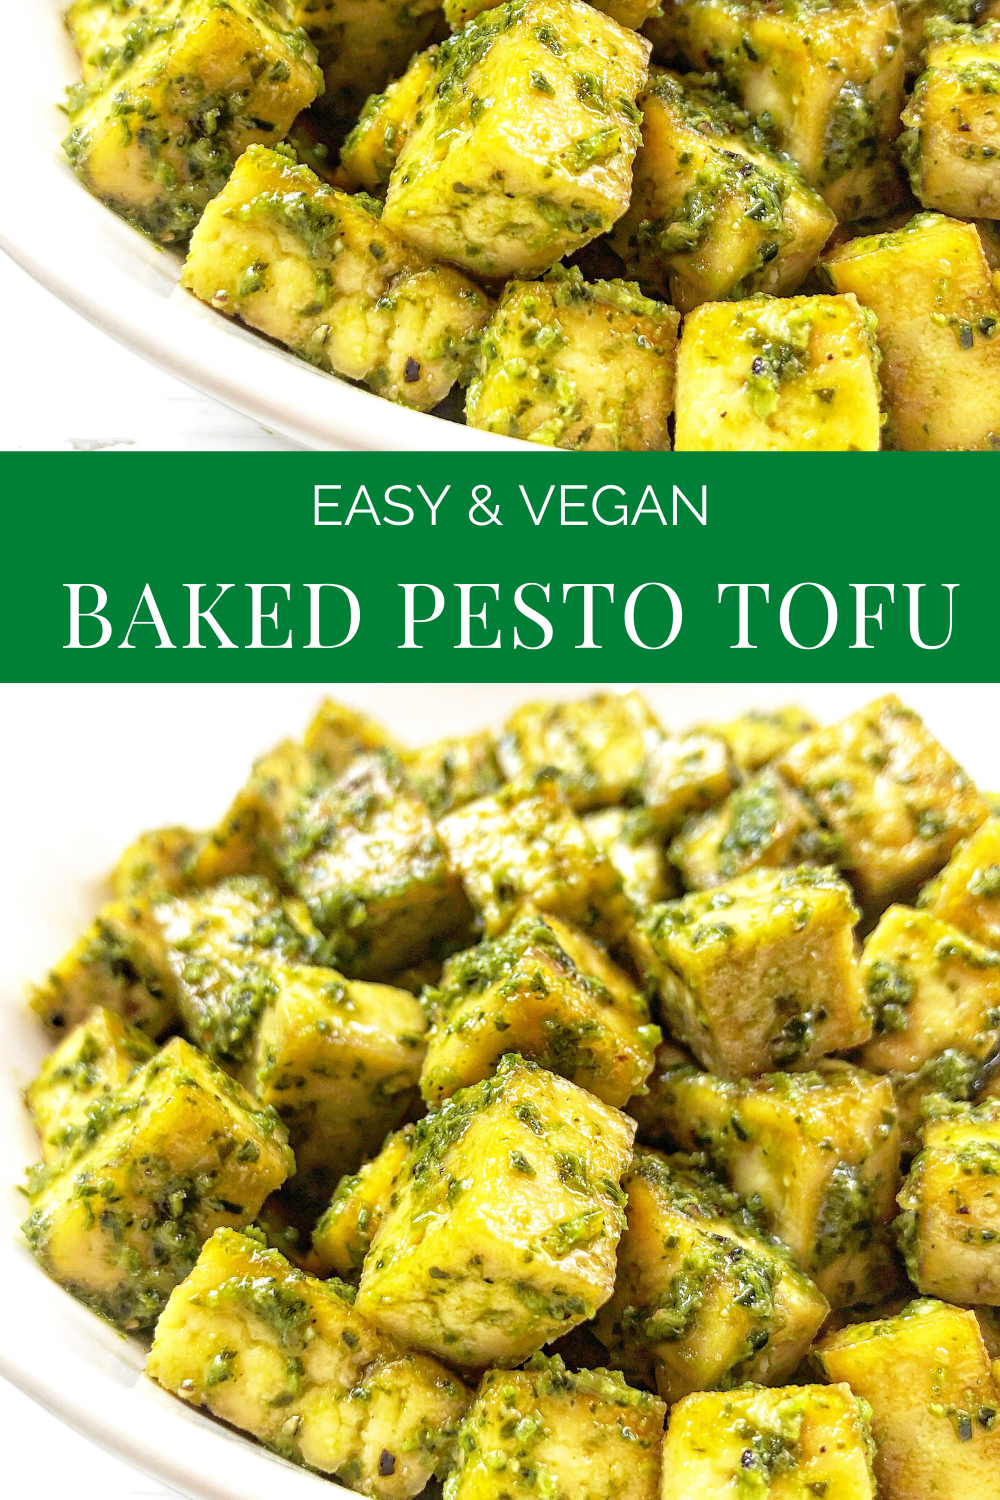 Baked Pesto Tofu - Basil pesto is tossed with tofu that has been seasoned and roasted with simple spices for a savory dish that is practically effortless! 